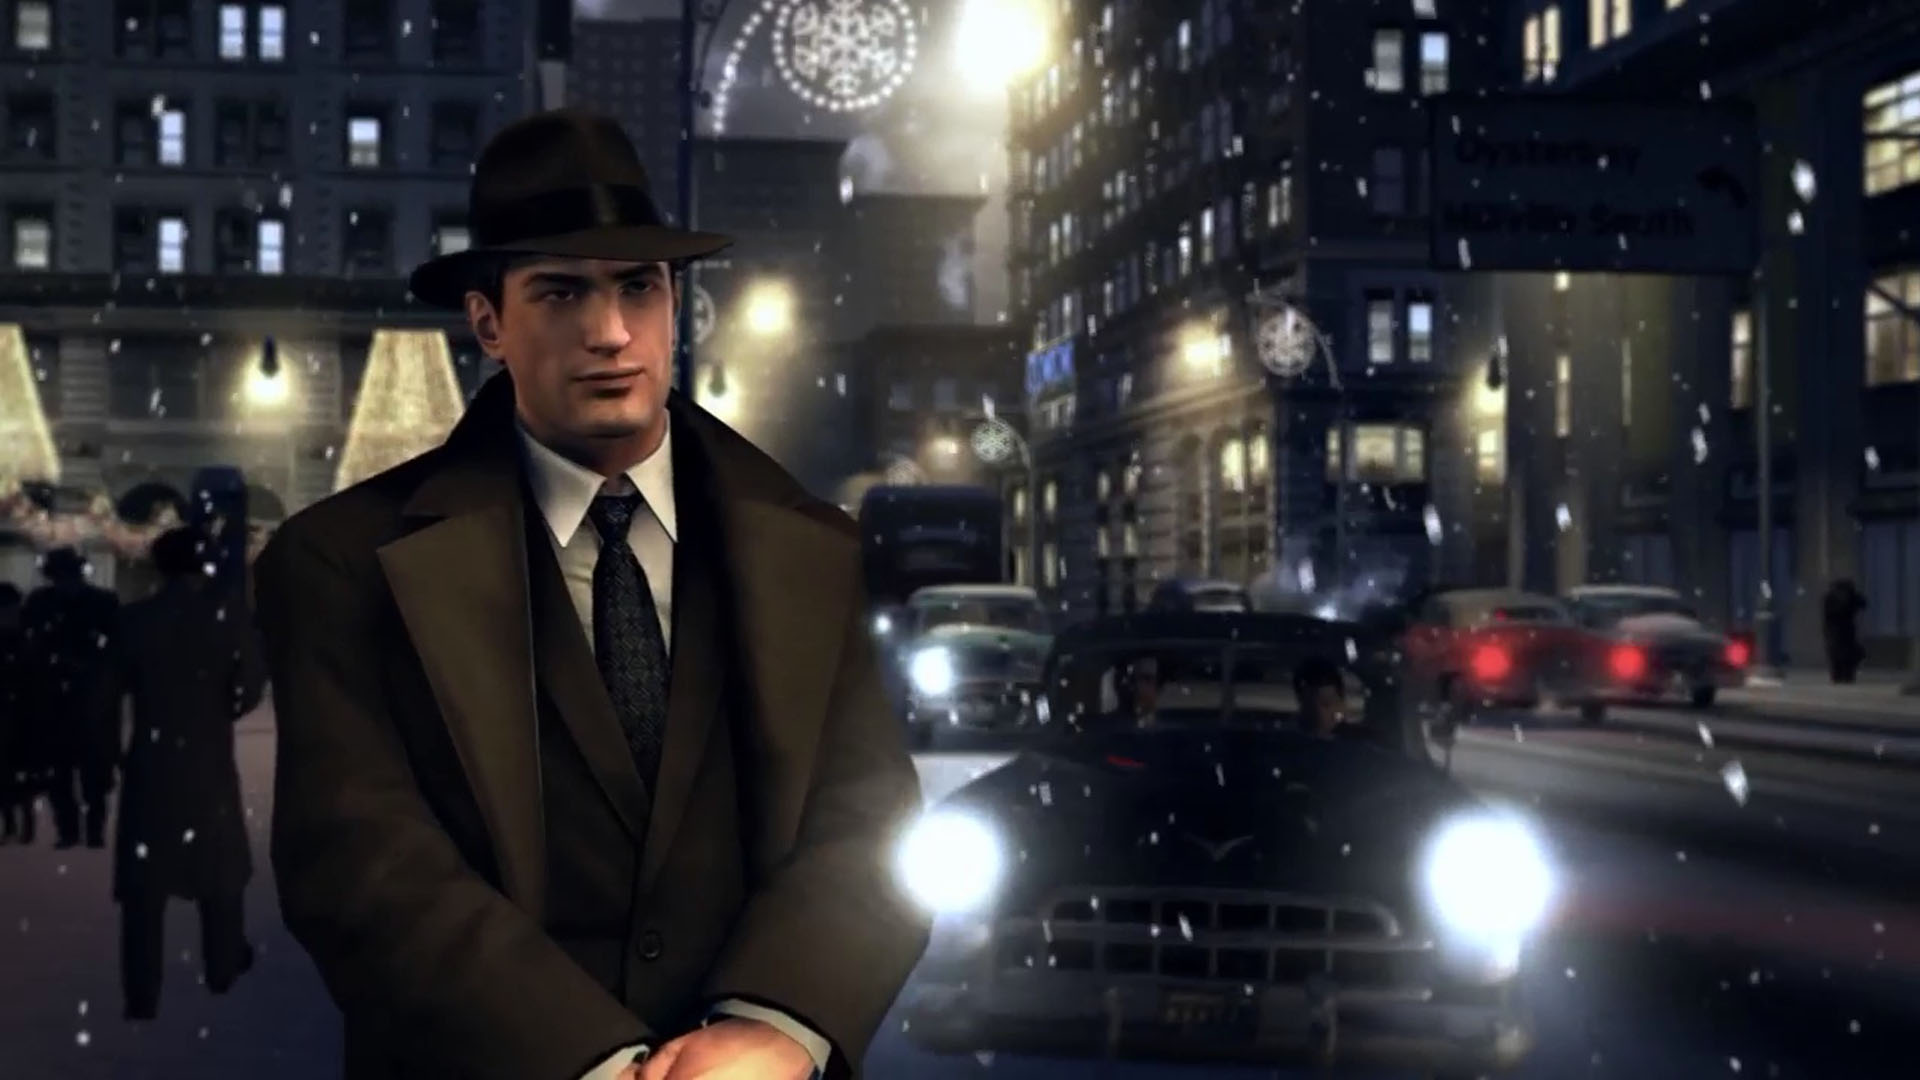 mafia-2-wallpaper